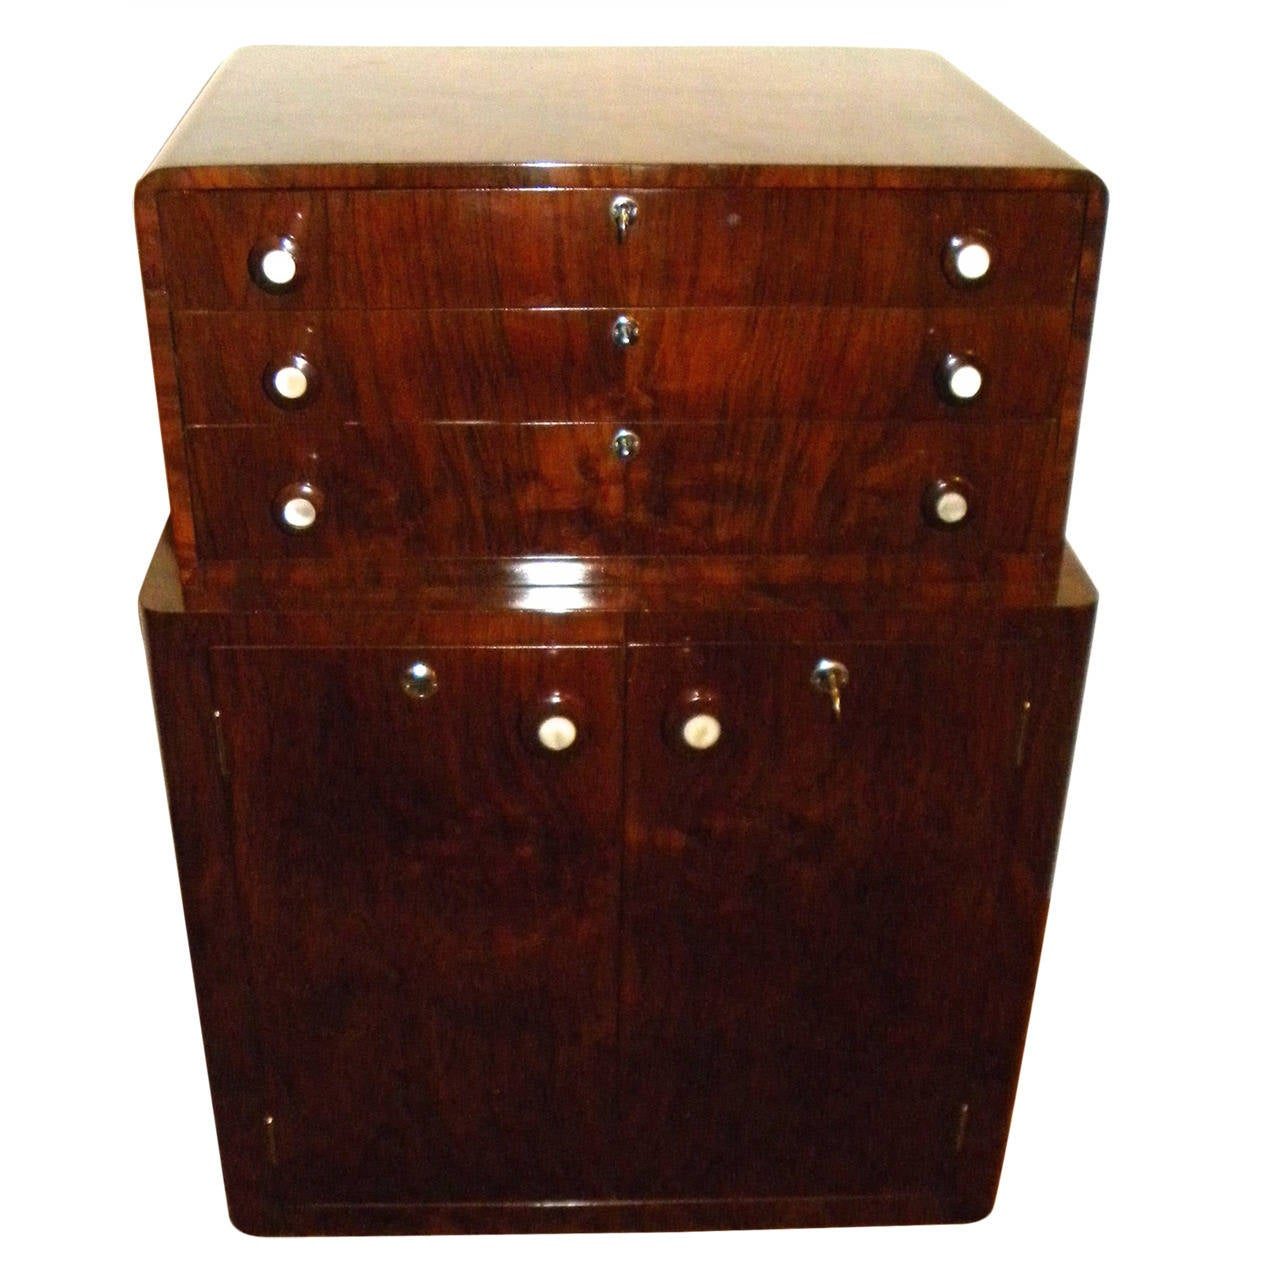 Prohibition Era Art Deco Bar Cabinet At 1stdibs